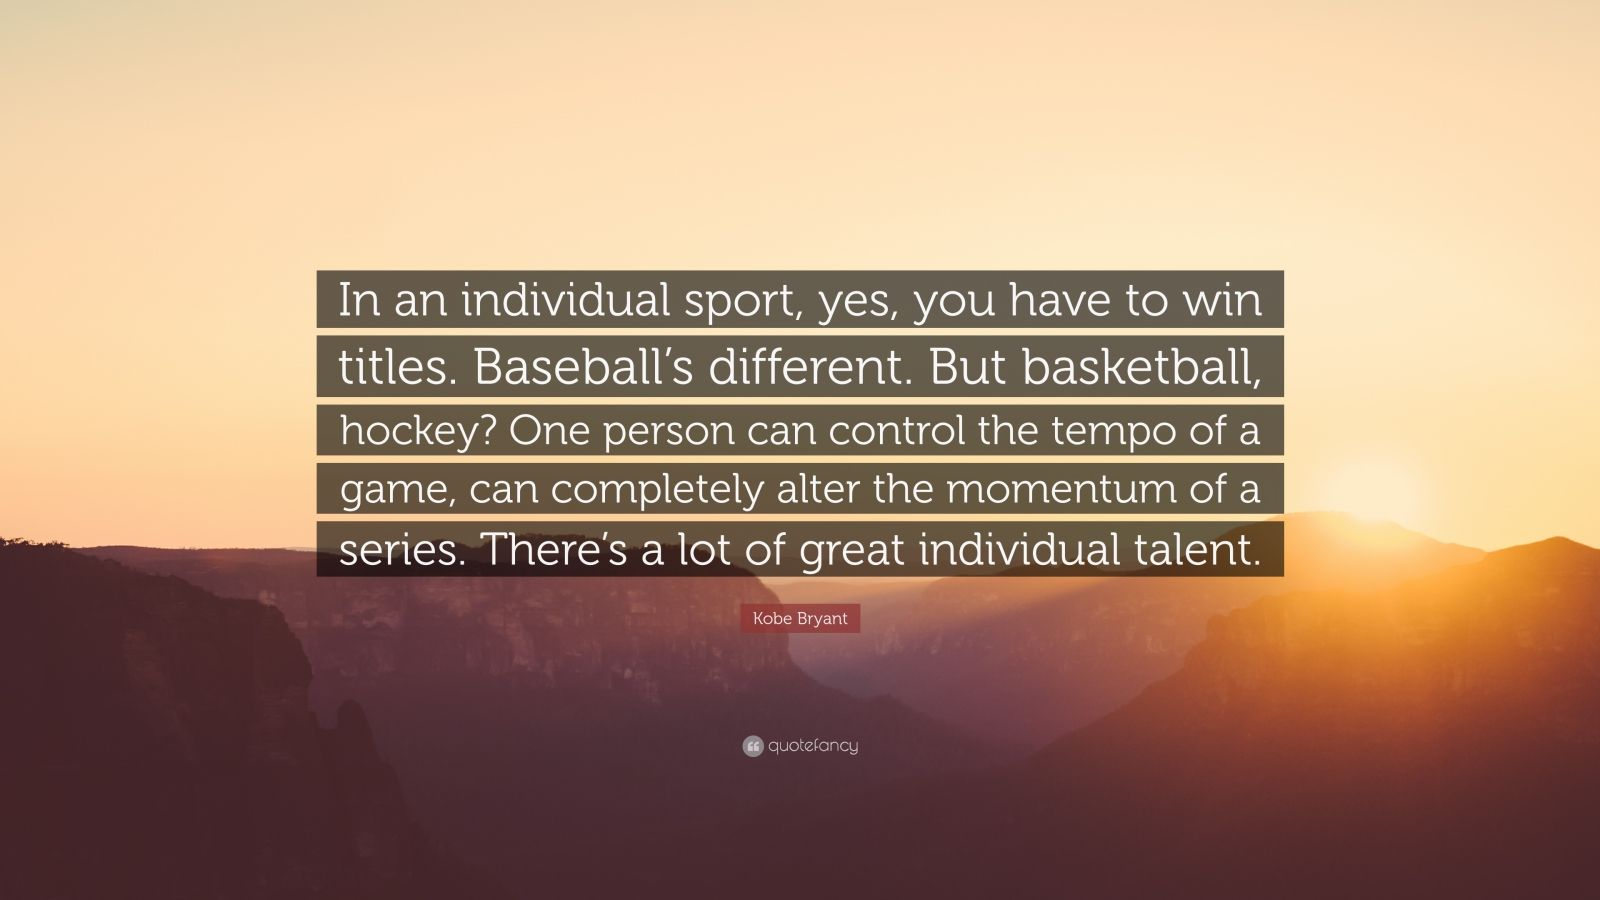 """Kobe Bryant Quote: """"In an individual sport, yes, you have to win titles. Baseball's different. But basketball, hockey? One person can control the tempo of a game, can completely alter the momentum of a series. There's a lot of great individual talent."""""""